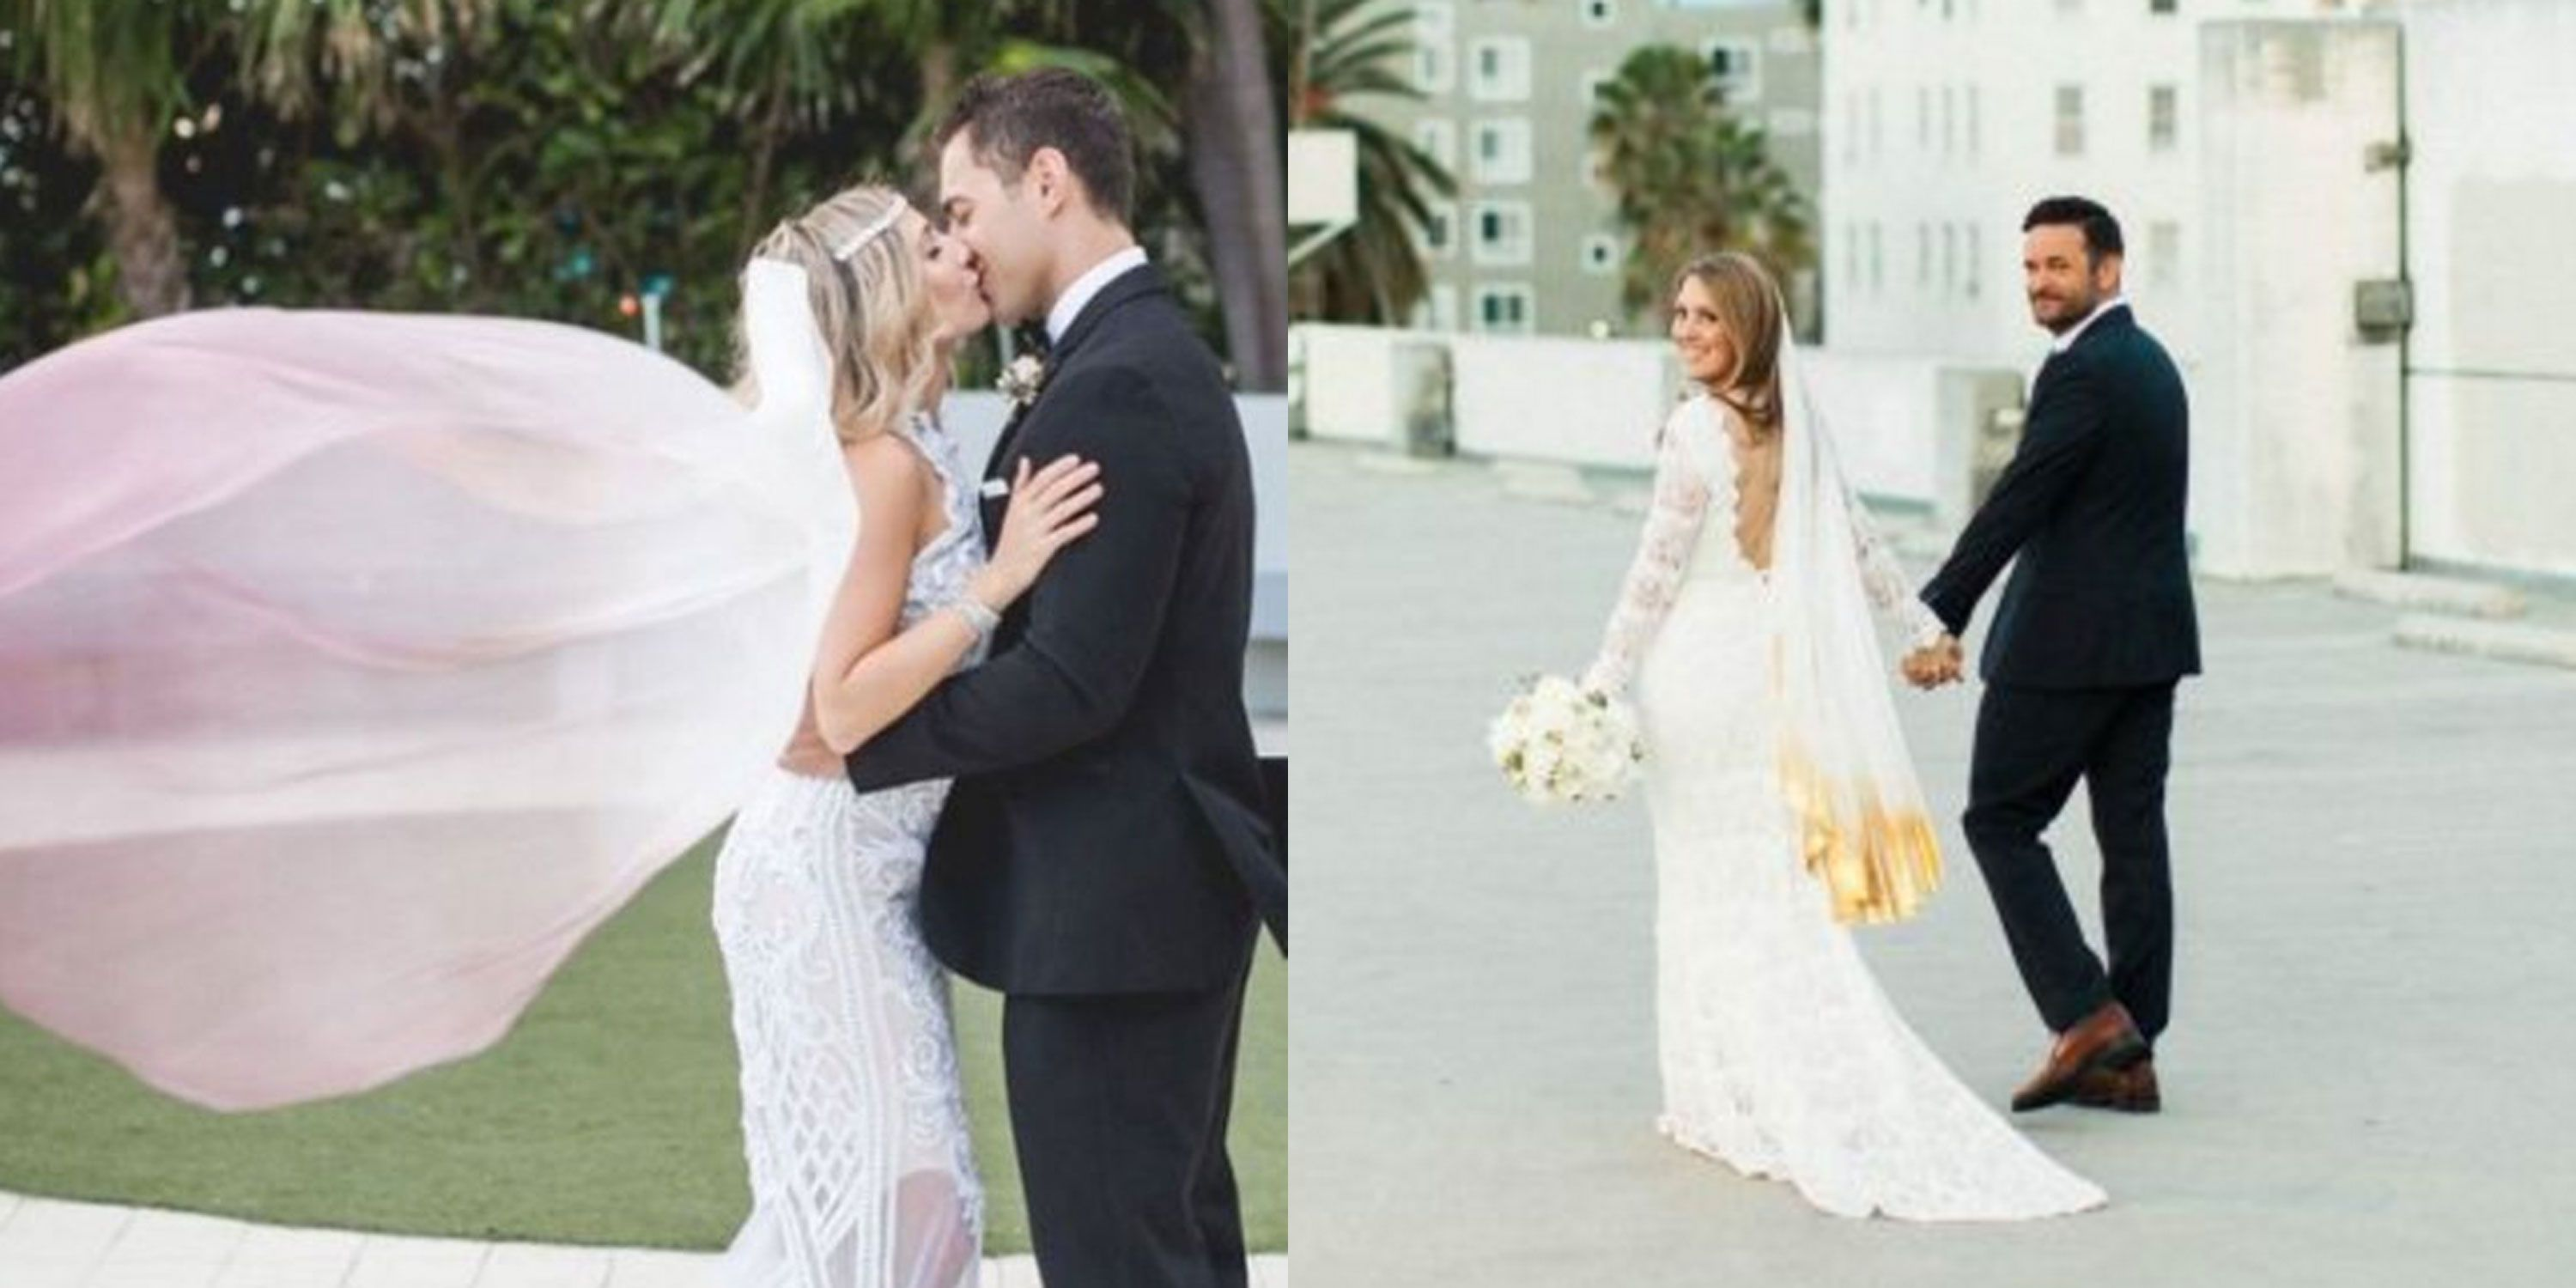 Ombre Wedding Veil Trend - Ways to Customize Your Wedding Dress